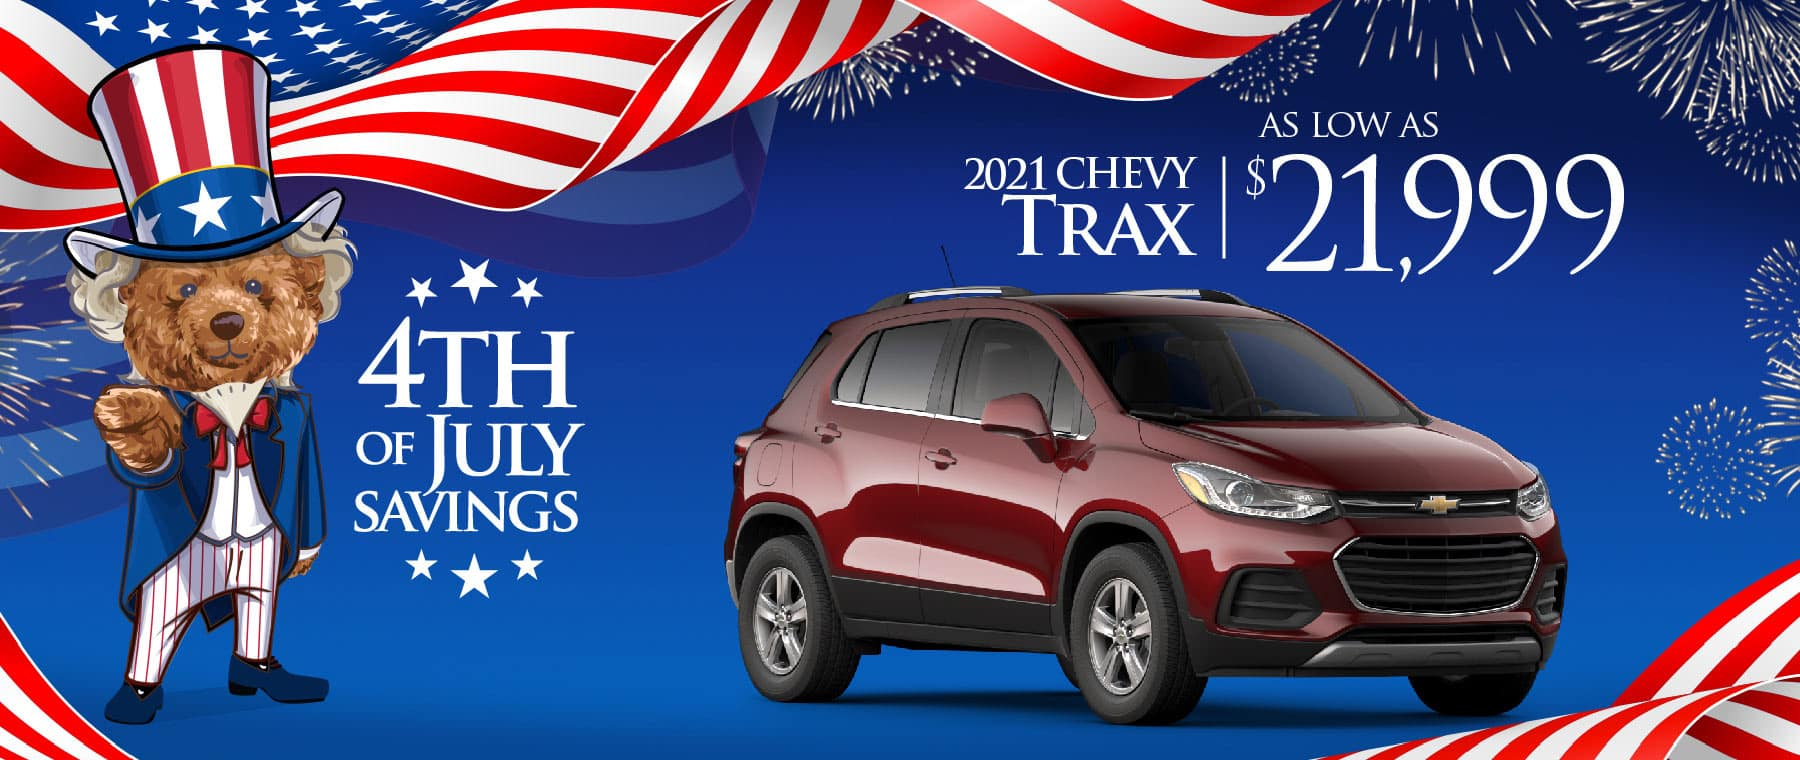 2021 Chevy Trax - as low as $21838